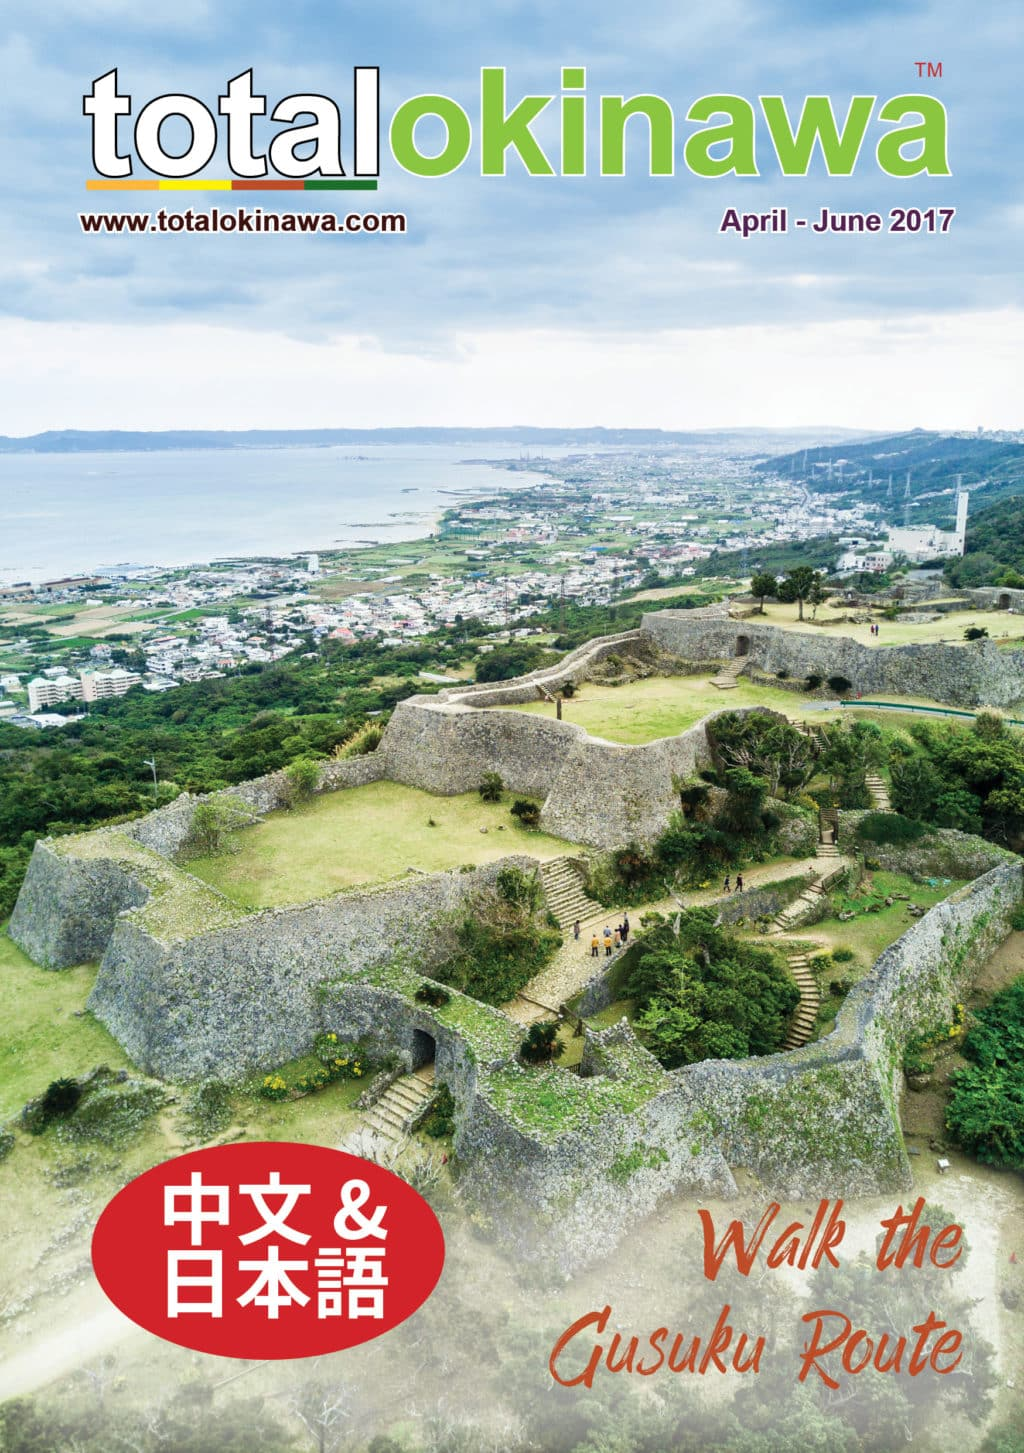 Total Okinawa Magazine April 2017 - Cover Page - Walk the Gusuku Route